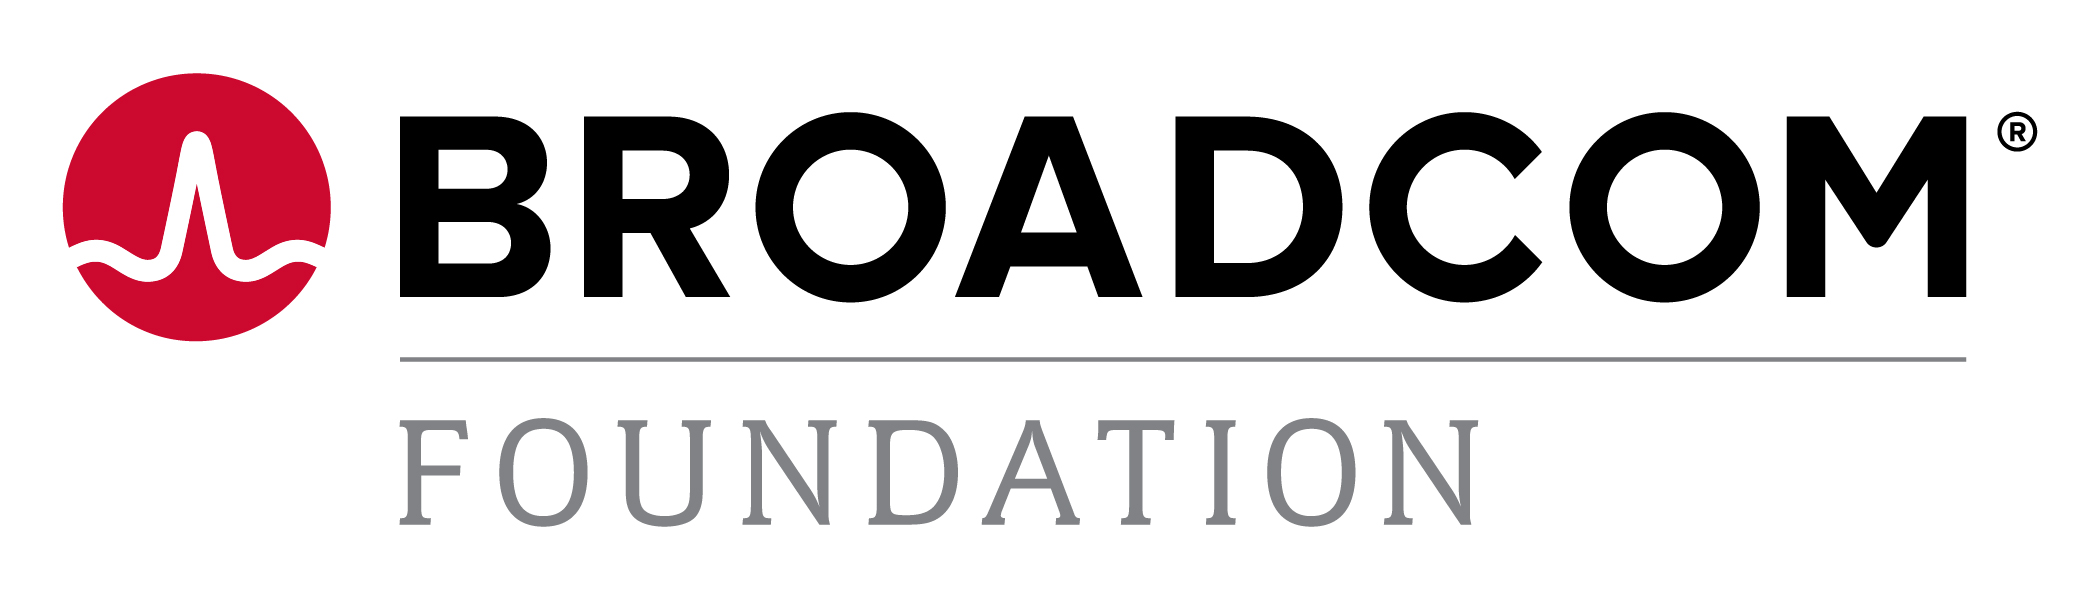 Broadcom Foundation Logo RGB